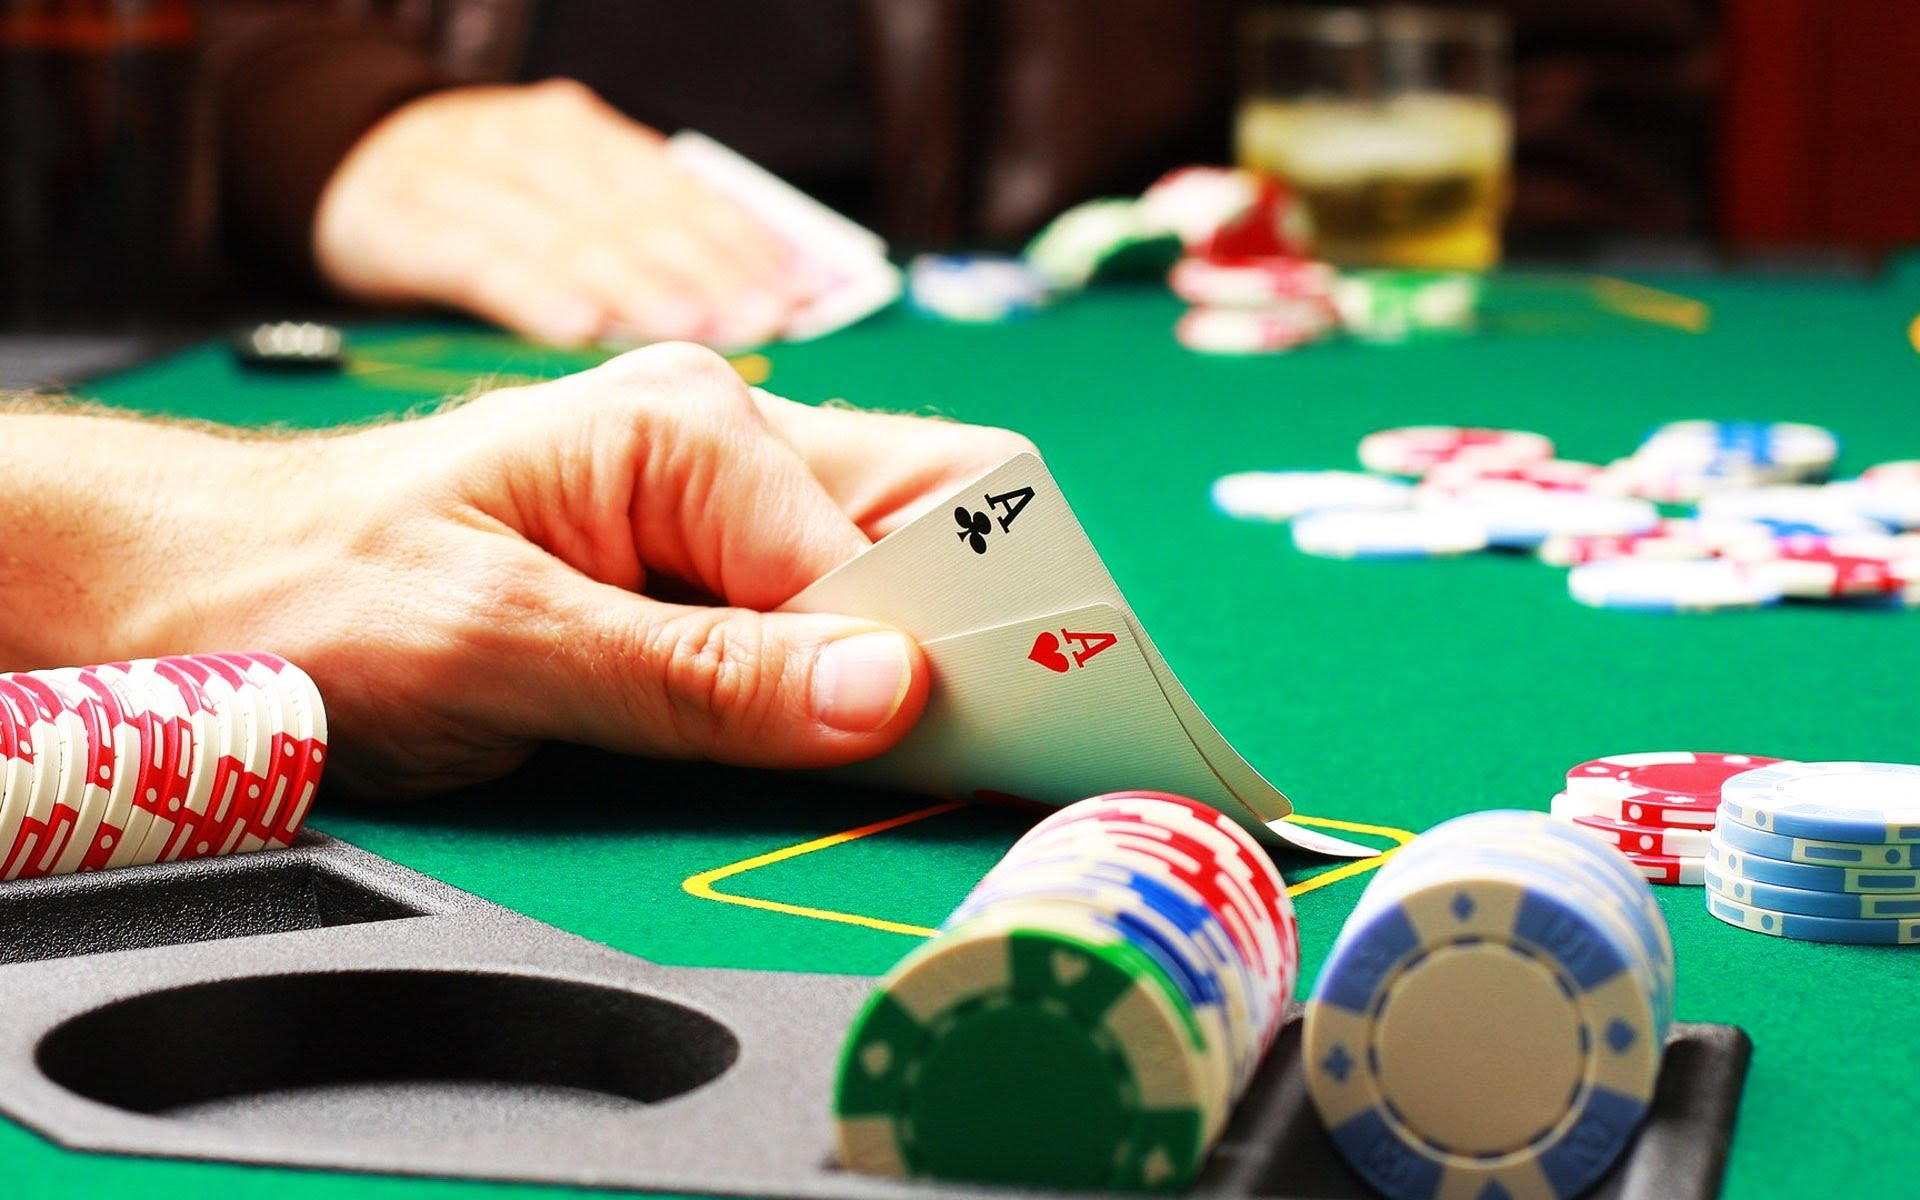 These Poker Cheating Tricks Have Shocked The Whole World